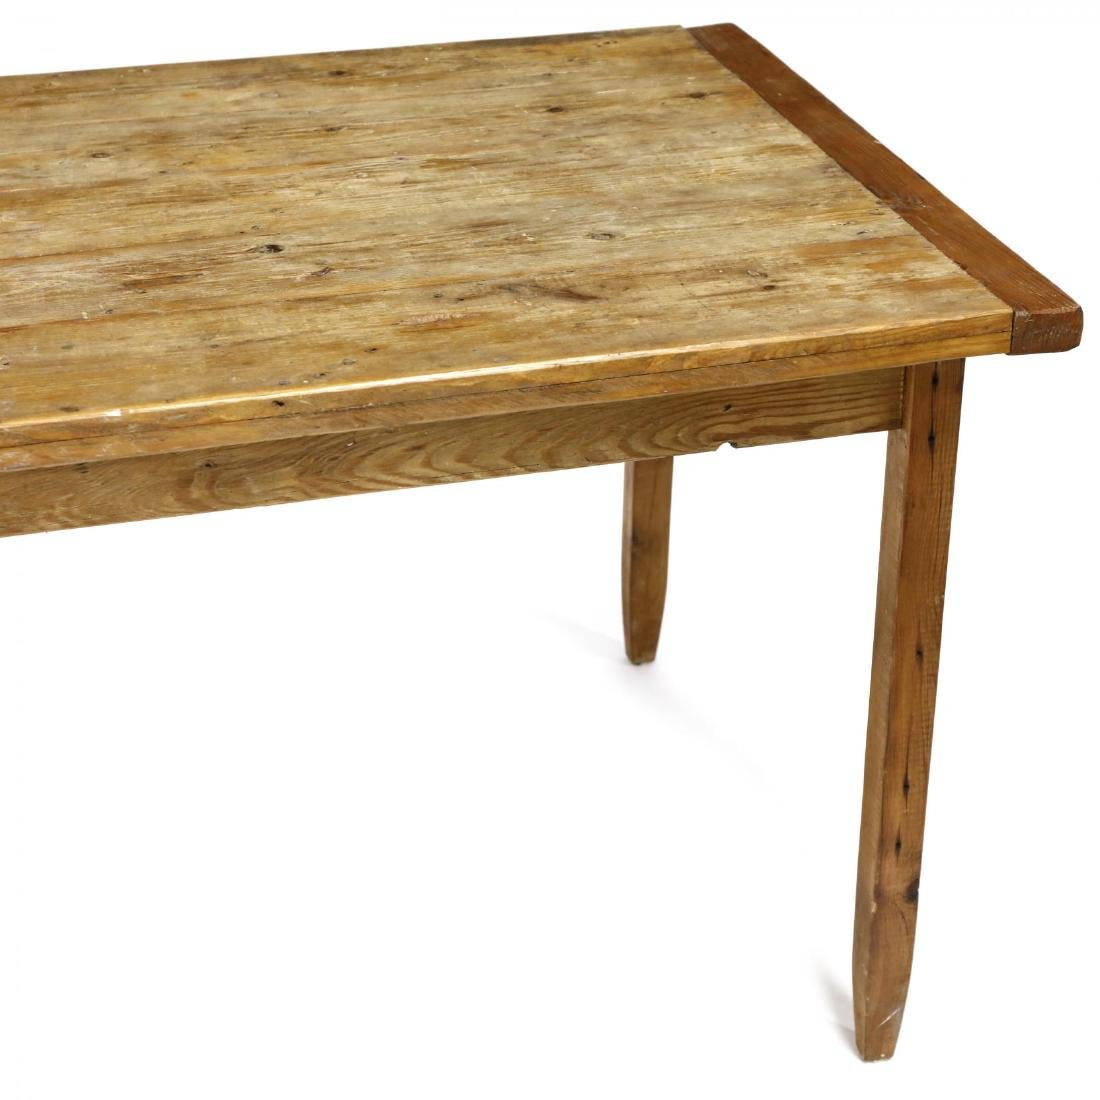 Vintage Pine Harvest Table - 4